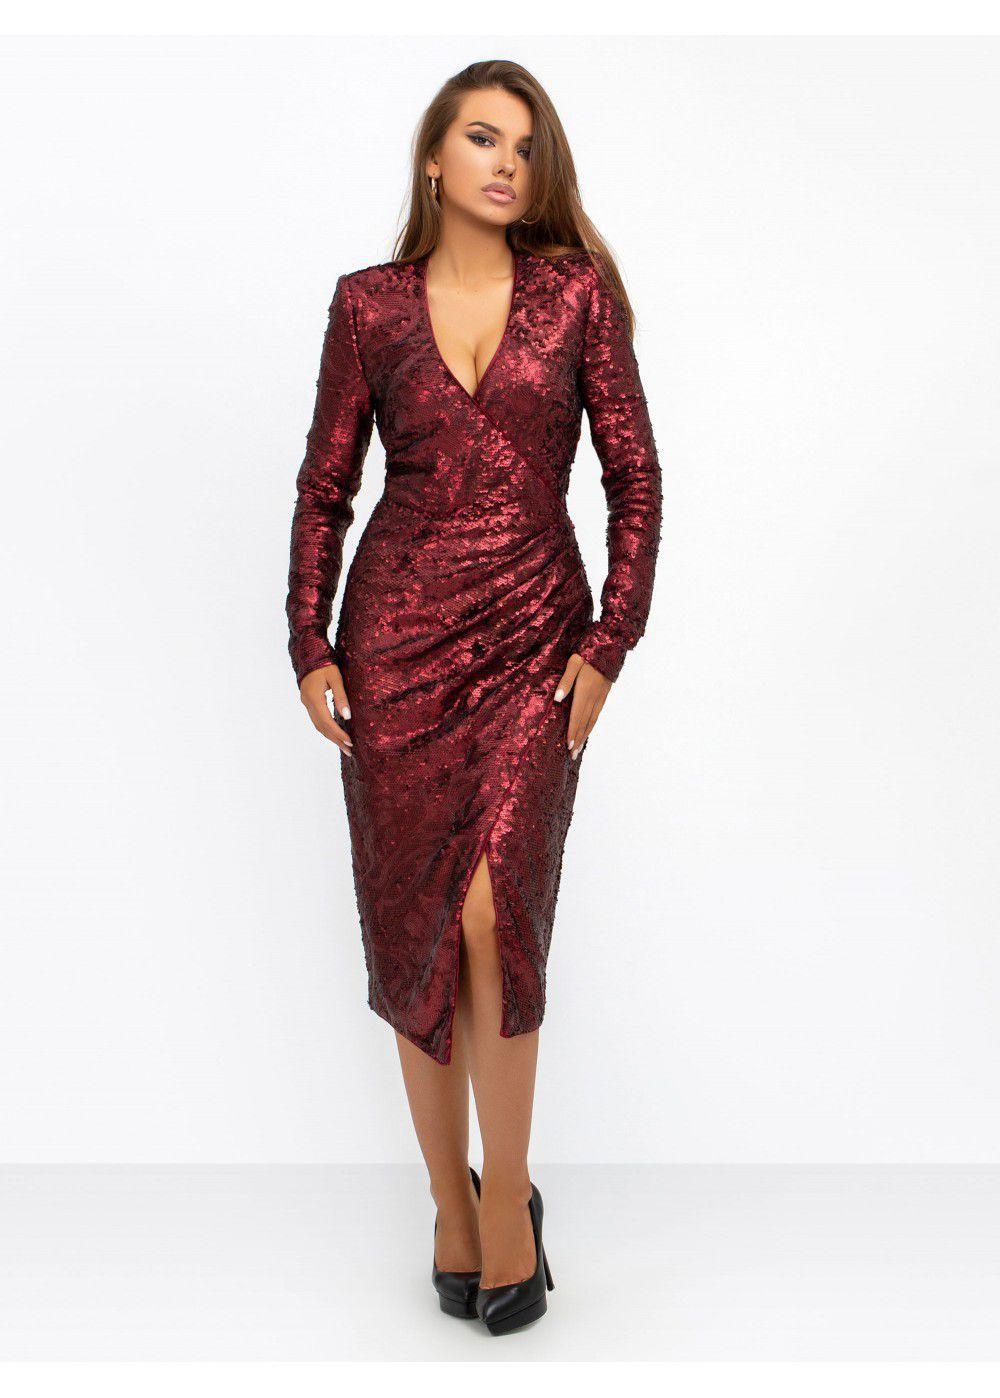 Misha Collection Neaky Sequin Dress